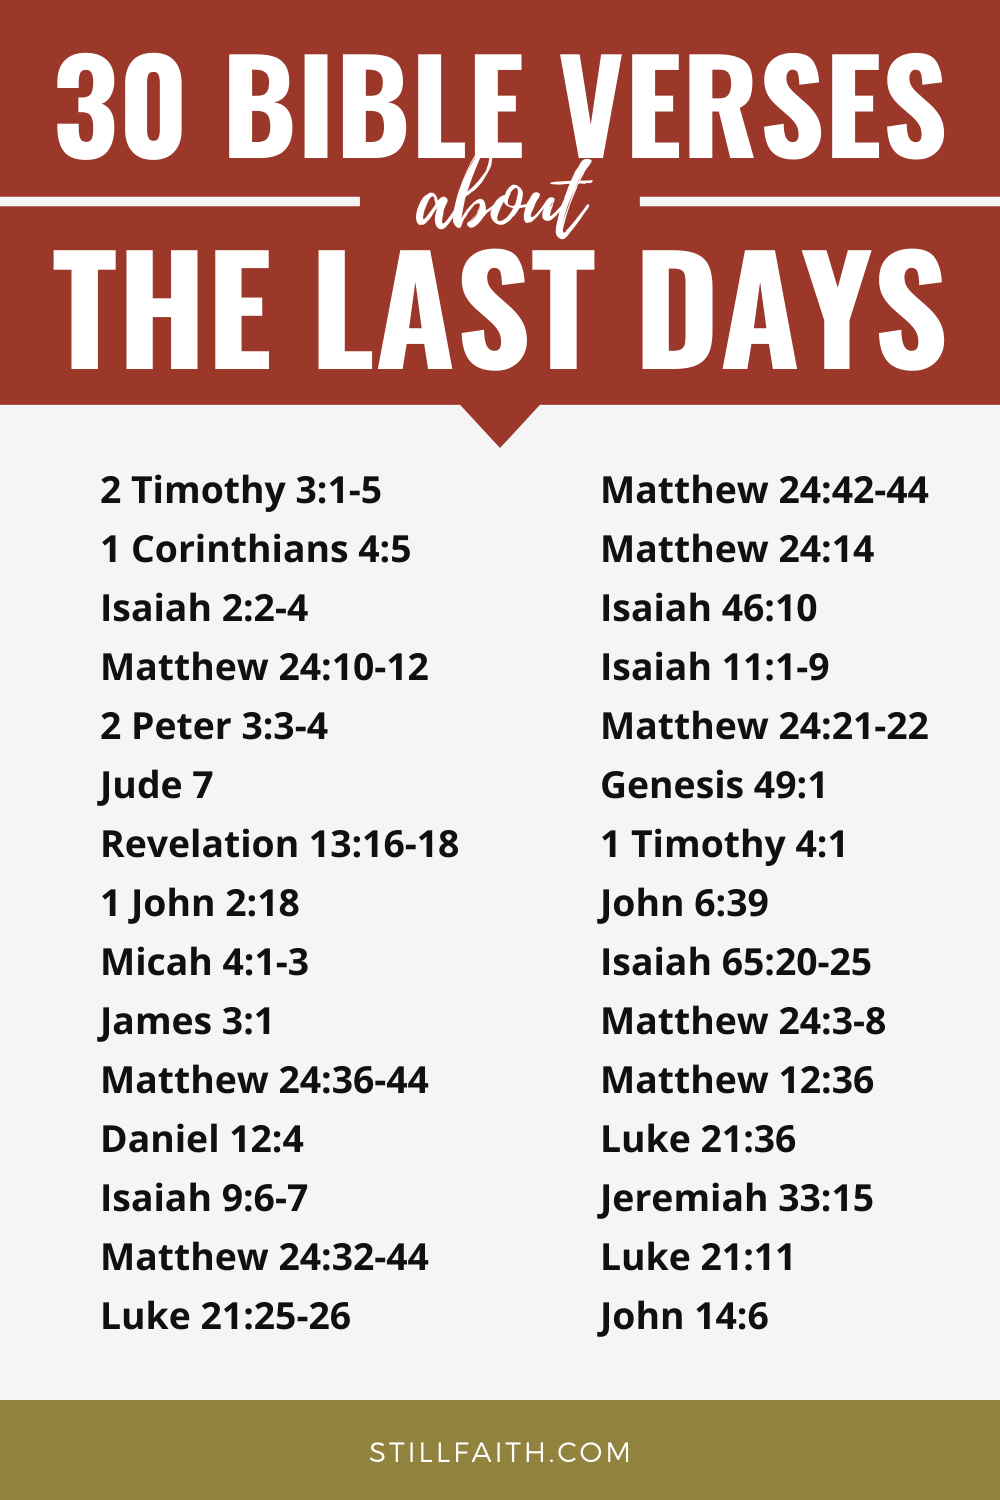 208 Bible Verses about the Last Days